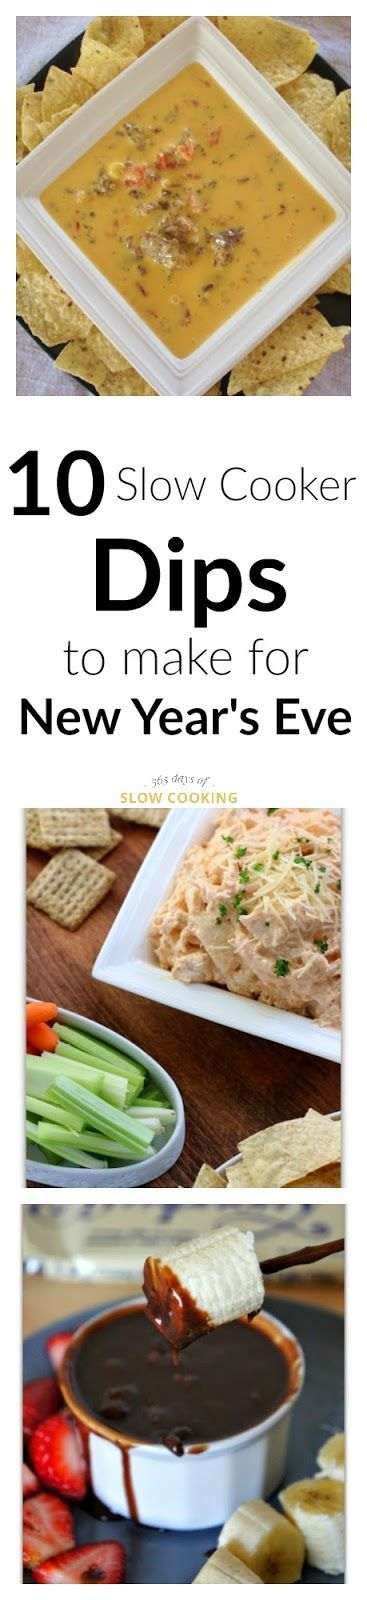 10 Slow Cooker Dips to Make for New Years Eve - 365 Days of Slow Cooking and Pressure Cooking